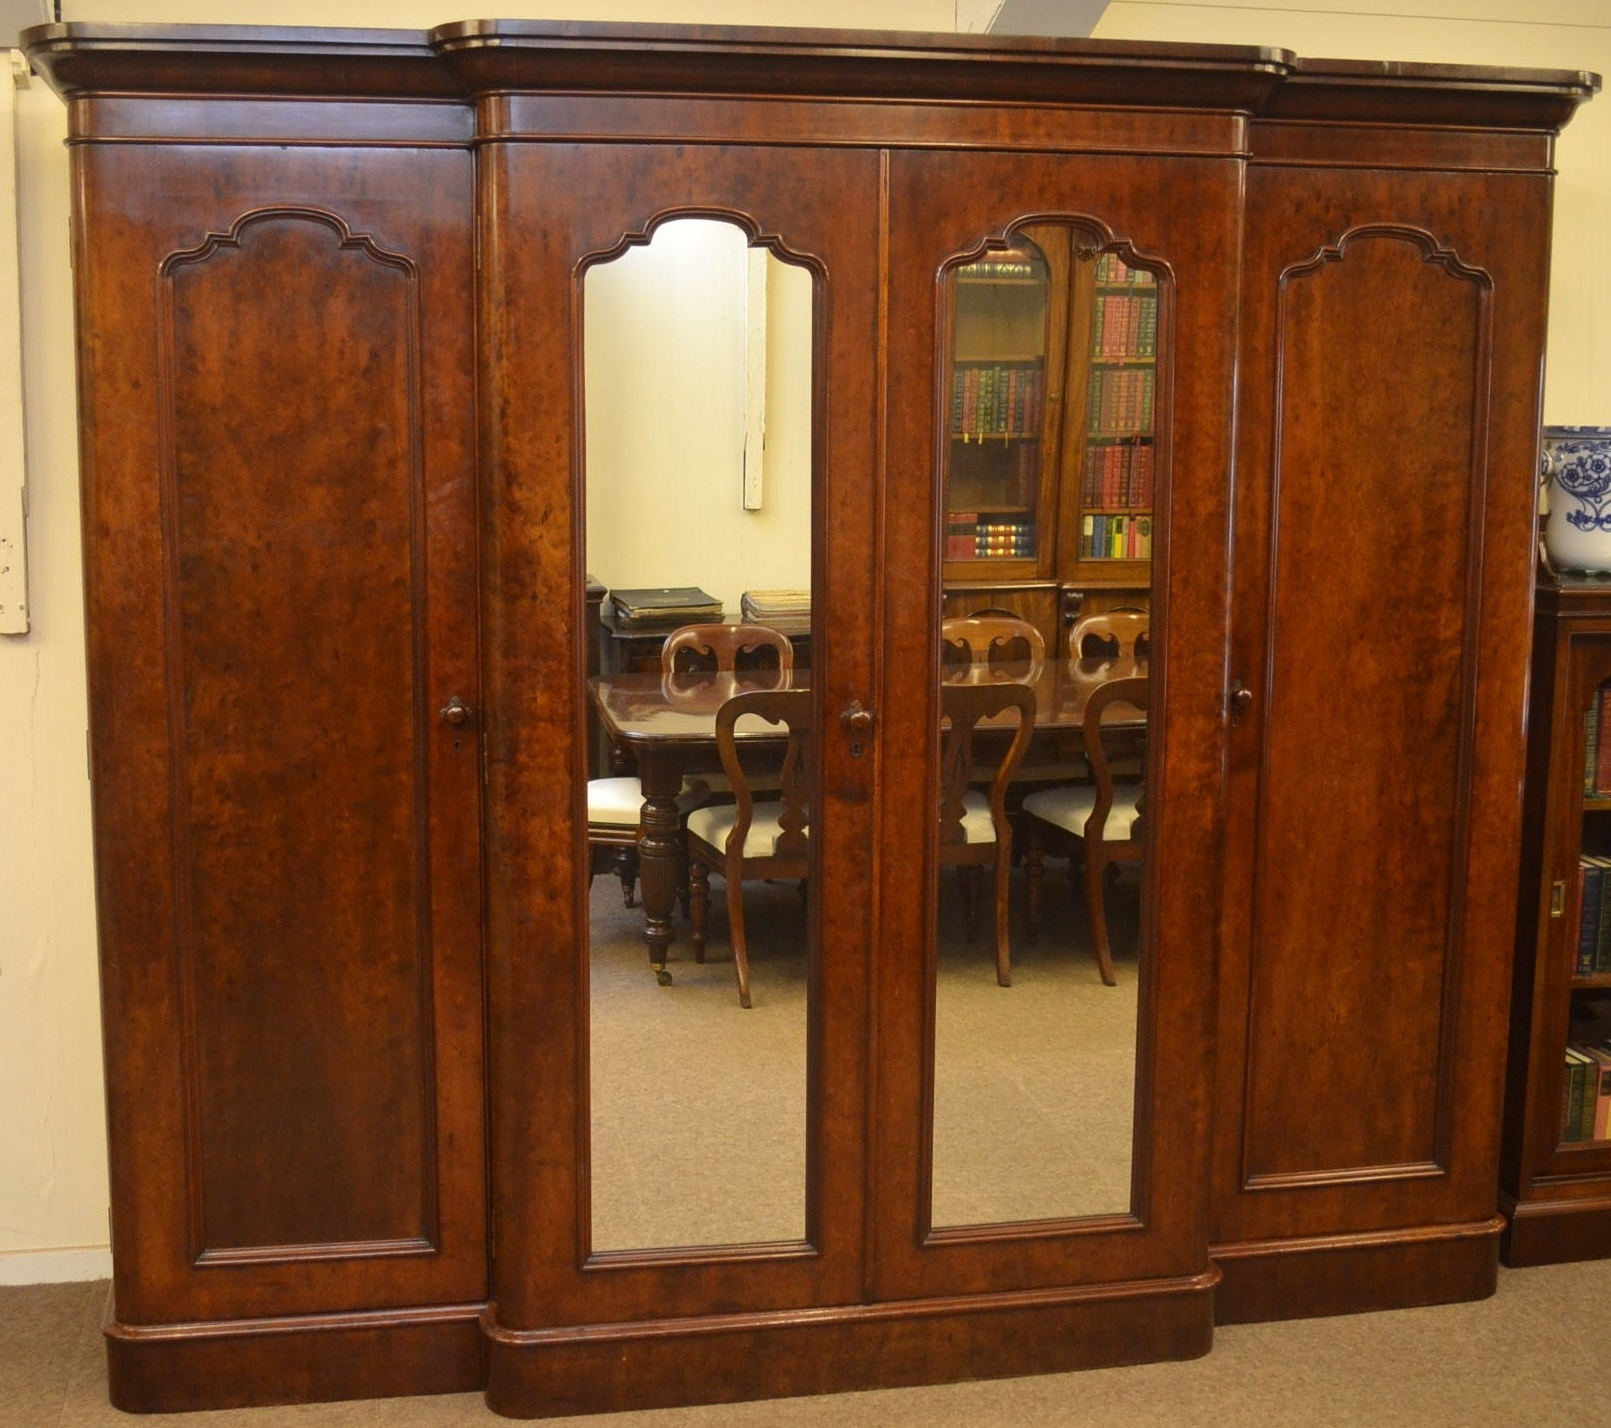 Breakfront Victorian Mahogany Wardrobe C1870 In From Quayside Antiques In Most Current Victorian Mahogany Breakfront Wardrobes (View 6 of 15)